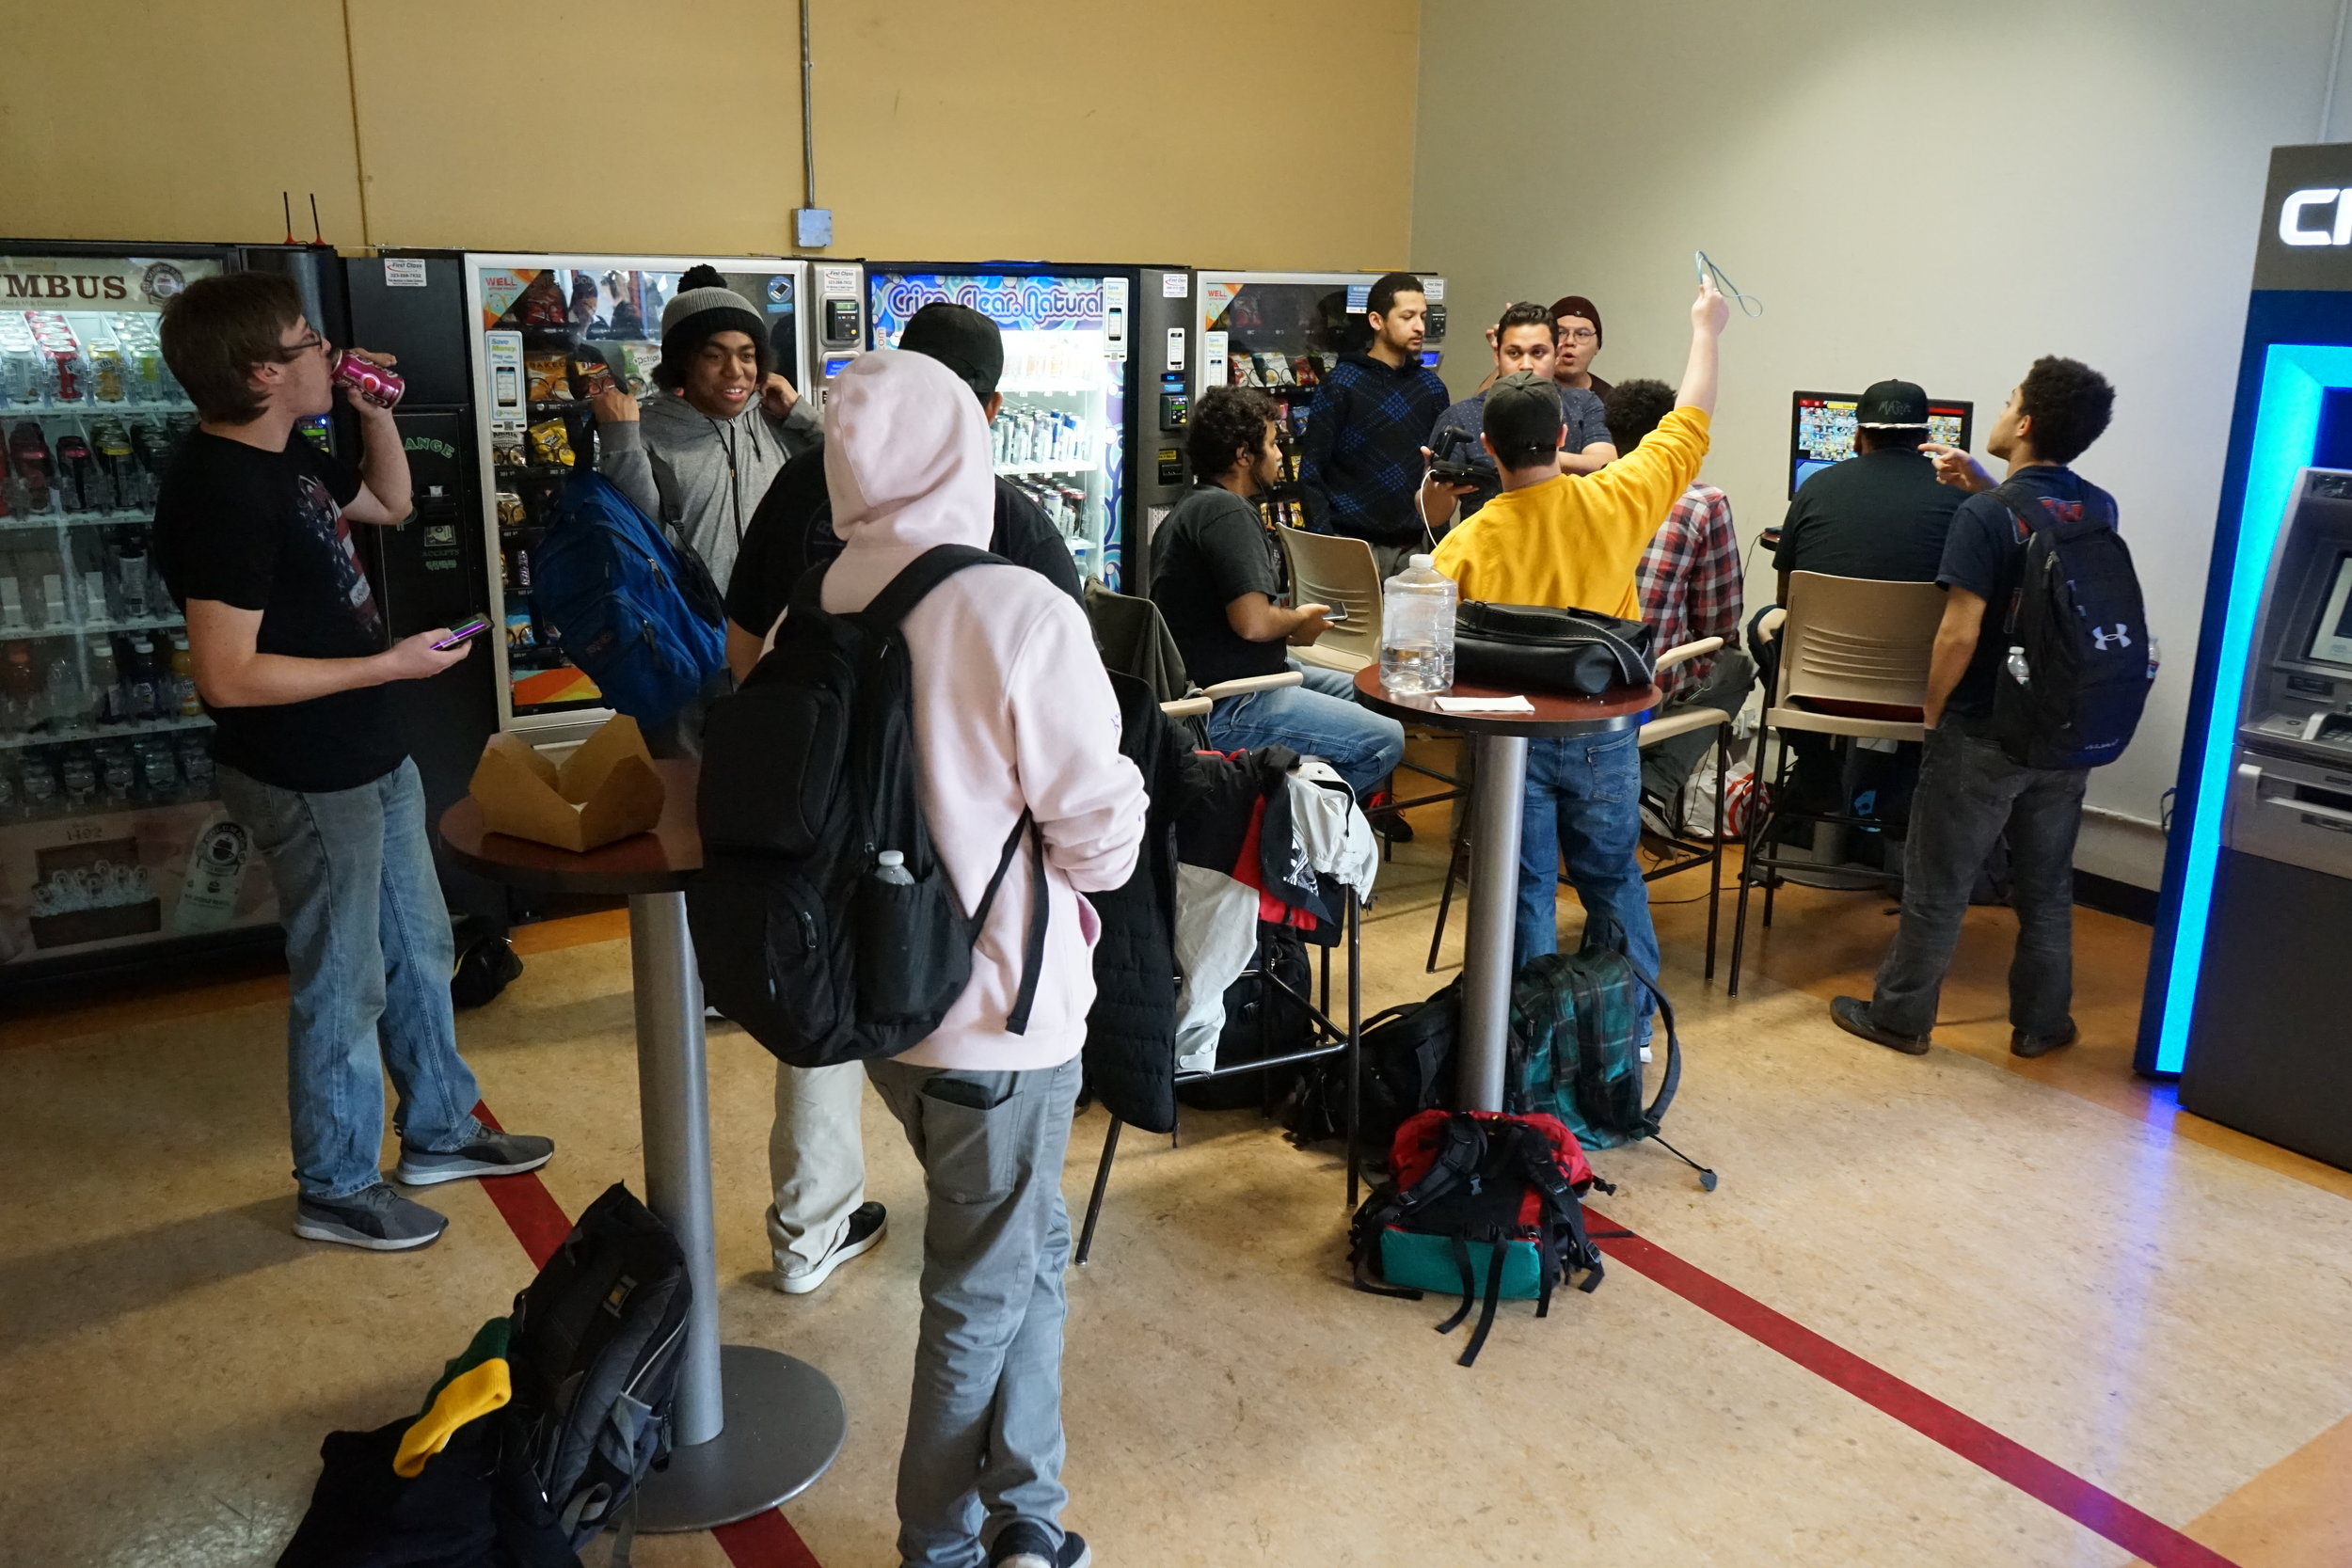 A crowd of SMC students gathers around the gaming setup at the back of the Main Campus cafeteria, Monday, March 4, 2019, at Santa Monica College in Santa Monica, Calif. Despite their regular meet-ups, the restrictions and qualifications for forming a club have kept the group from forming an official Gaming Club through the college. (The Corsair/Nicole Haun)